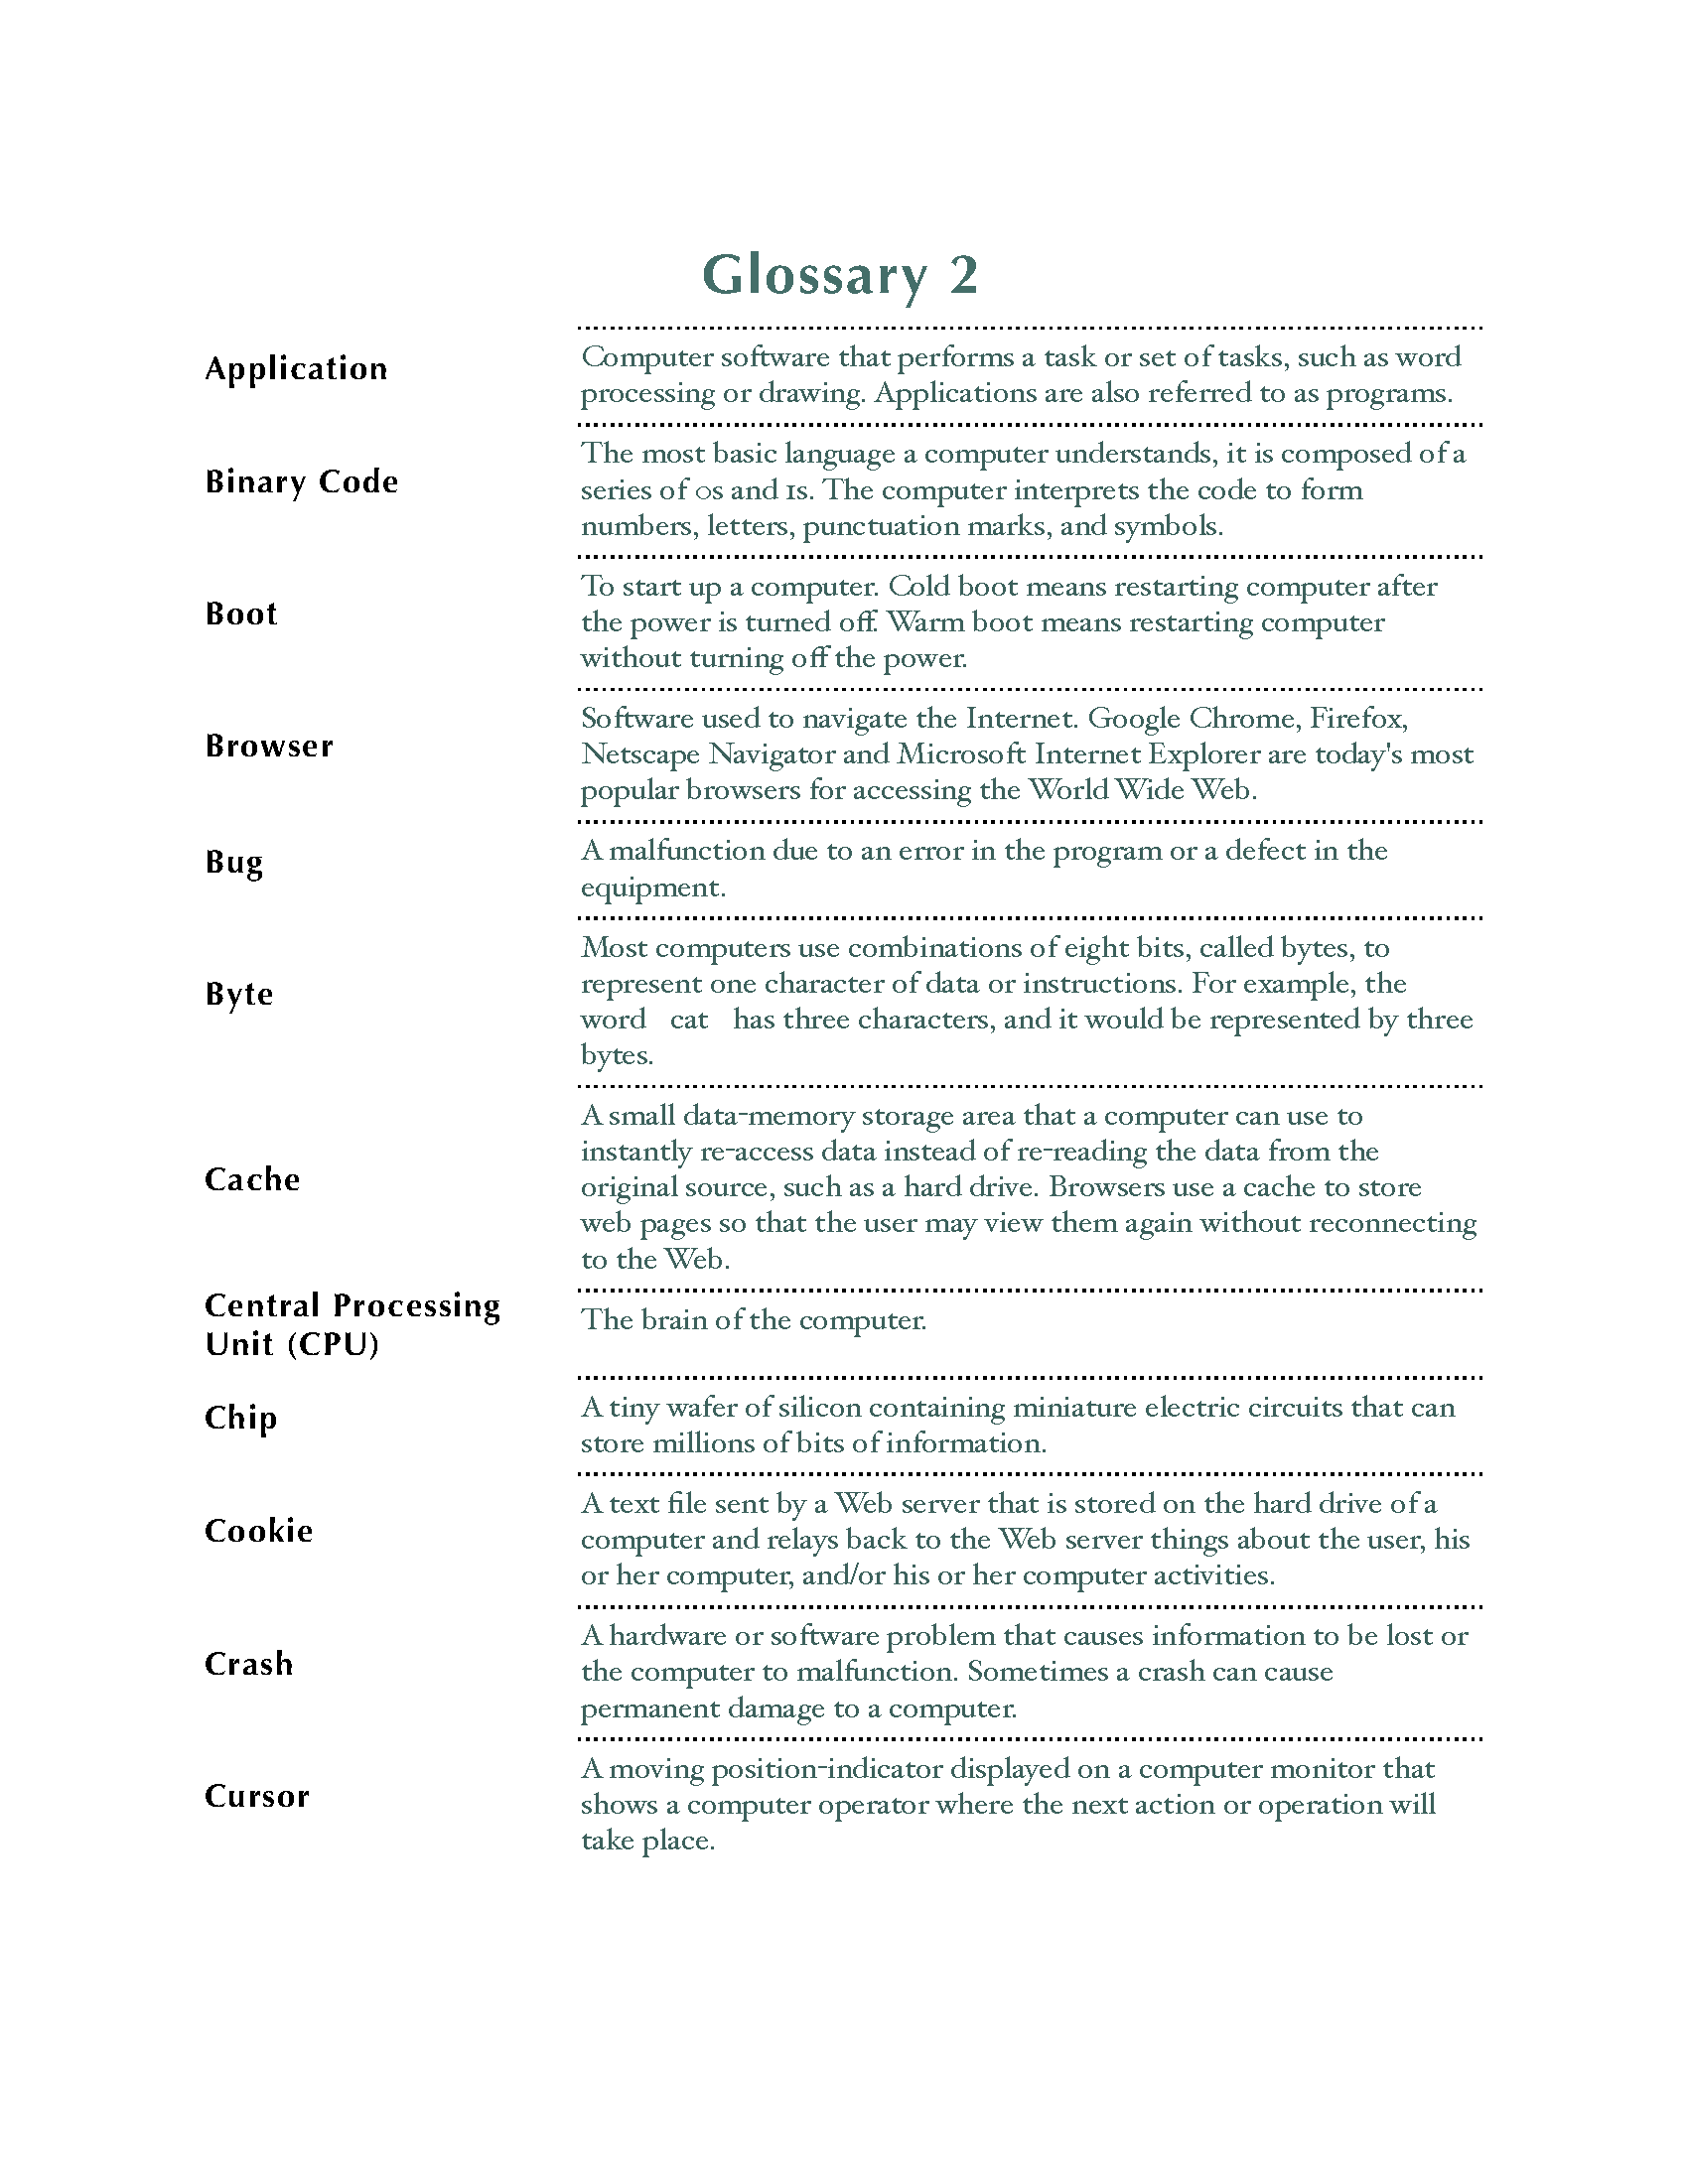 Glossary Template Page 02